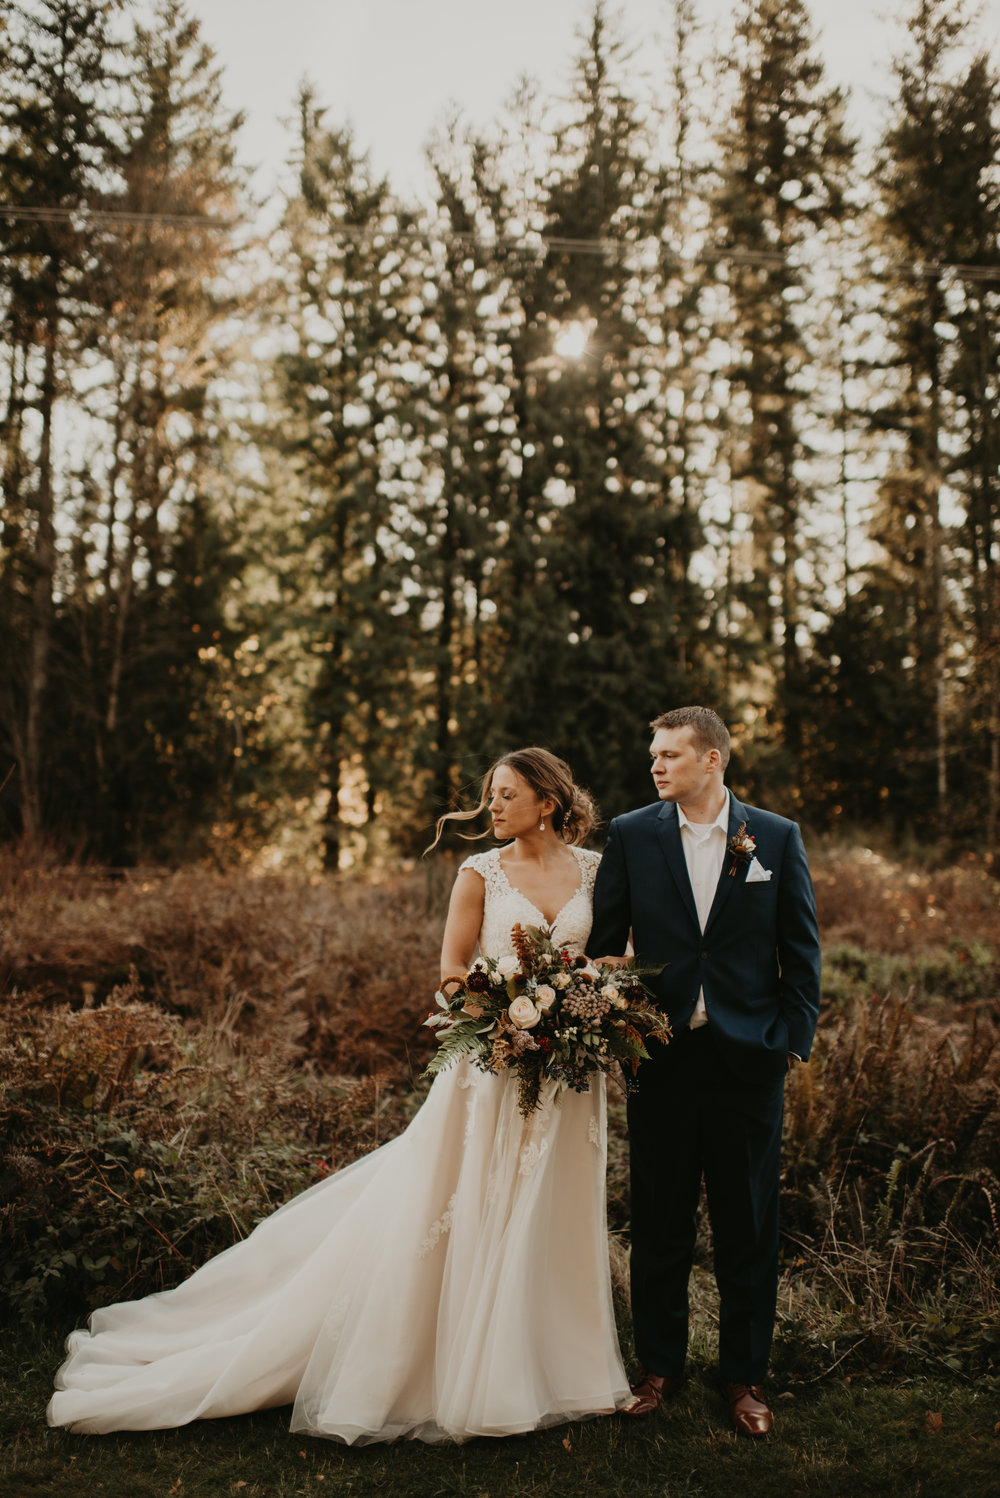 """KAMRA WAS NOTHING SHORT OF AMAZING""  My husband and I had a small, intimate wedding/elopement (with 15 of our closest family members) in Monroe, Washington November 2018. We are originally from and live in Anchorage, Alaska but selected Washington as we have family close by, and knew it would be slightly warmer that time of year. I found Kamra through Google search and was immediately captivated by how breathtaking her photos were. Picking out a photographer in another state isn't always easy, but Kamra was a saint from the very beginning. She helped us tremendously, in not only picking a location to have the wedding (and a separate location to take portraits of us two) but giving us her vendor recommendations for everything else we needed for that day (flowers, cake, etc.) Closer to the wedding day, we talked to her on the phone and nailed down a wedding day timeline. We were also given an awesome questionnaire for us to identify any specific photos we wanted to make sure we captured on that day. When our wedding day finally arrived, truly from the early morning all the way into the evening, Kamra was nothing short of amazing. She kept us moving along in a timely manner, (we were even ahead of schedule!) and even as only ONE person, she was always right there to capture every special moment. Kamra, my husband and I drove to a separate location to take individual photos. My husband can be pretty awkward when it comes to photos, but I am still shocked at her ability to direct us in a way that was fun, laid back and just comfortable. When we got our photos back from that day, I (as well as my entire family) were truly speechless. I knew that we would have some amazing photos, but I was not prepared for every.single.photo. to be as gorgeous as they were. I wanted to be able to look back at our wedding photos, and be able feel the emotion and mood from that day, and these photos do exactly that. Not only do we have many many beautiful posed photos but, so many wonderful candids of us, our family, and every little detail of our special day. I don't have to worry about ever forgetting any moment of that day, as it is all truly reflected in our photos. I could not be any more grateful to Kamra, as she truly is a kind soul with an incredible talent, and because of her we will always remember how truly beautiful this day was.  - Madison + Keegan, 2018, Monroe, WA"